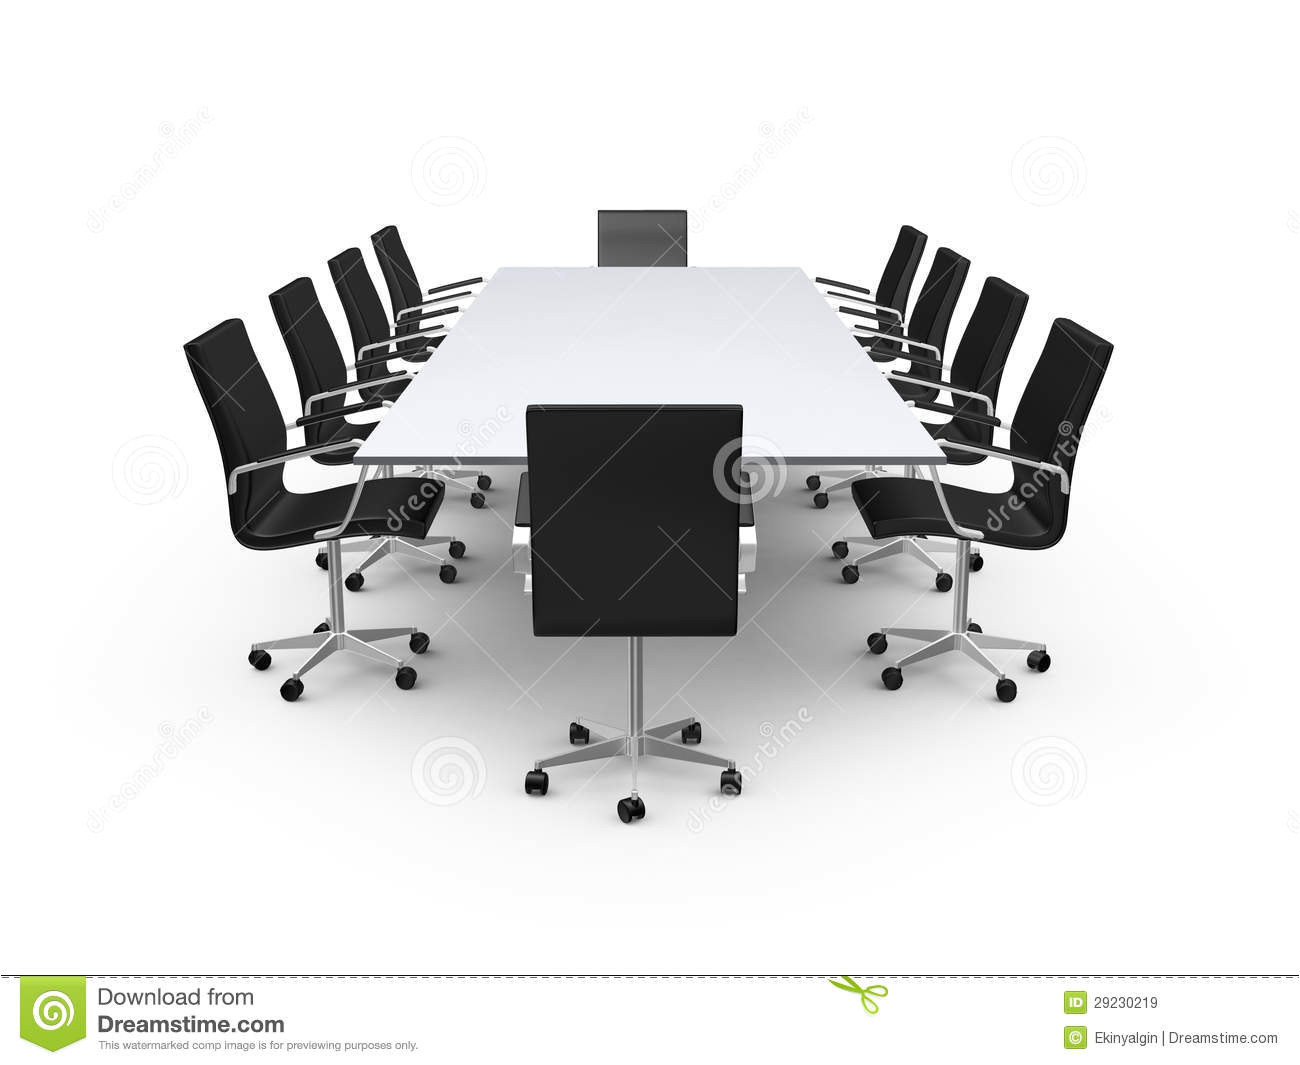 Used Office Furniture Sale Knoxville Tn Office Furniture Outfitters Knoxville Tn Table Chair L Shaped Gaming